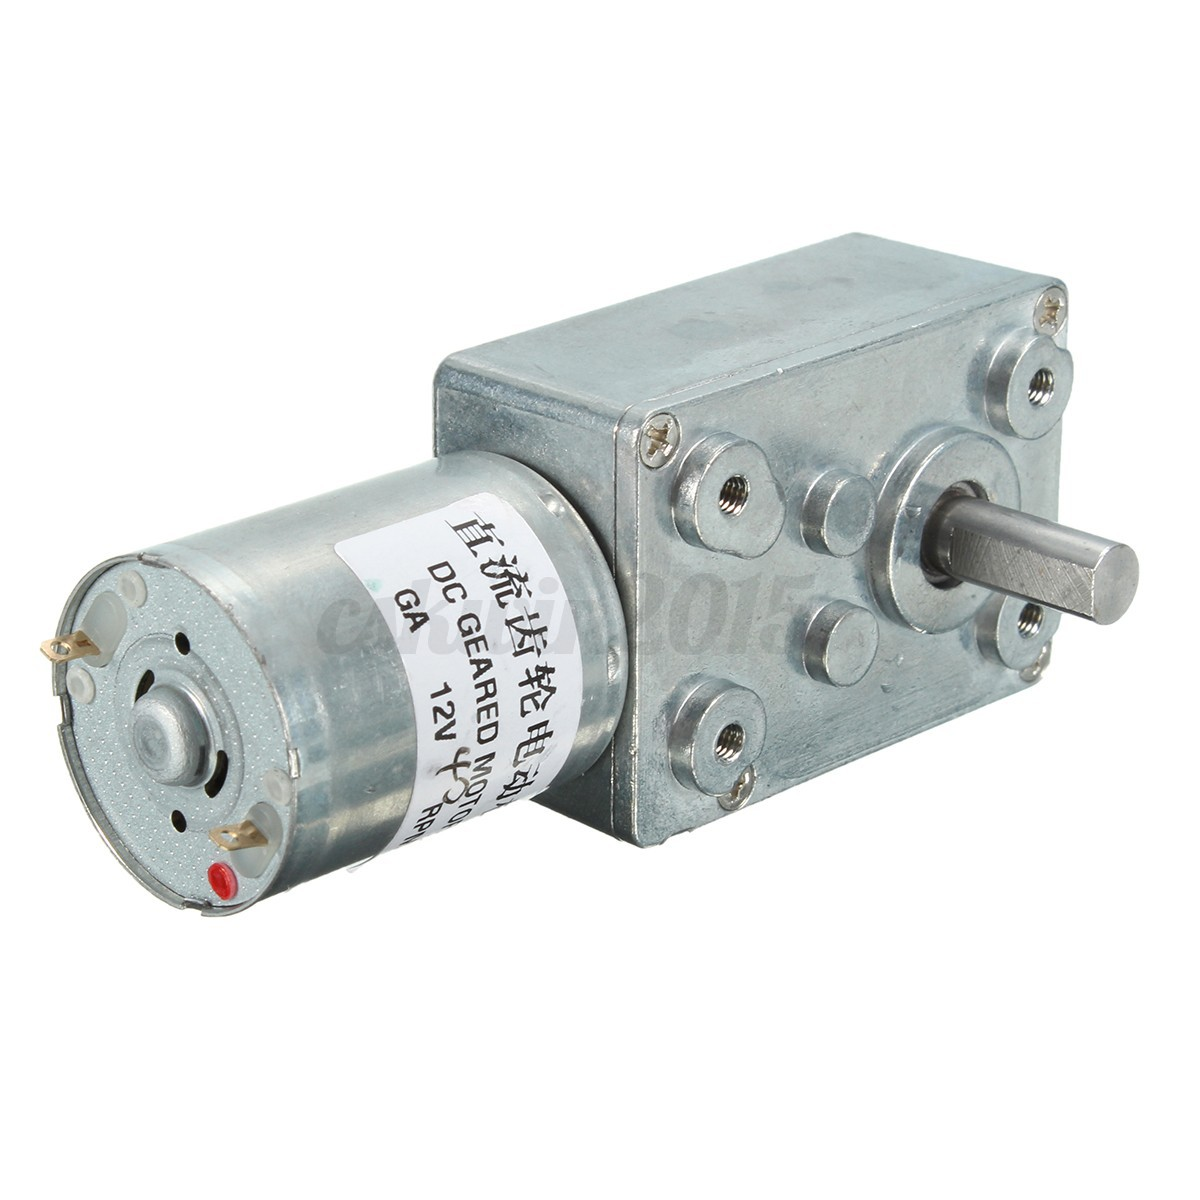 12v 40rpm torque turbo worm gear box geared electric drive for Worm gear drive motor